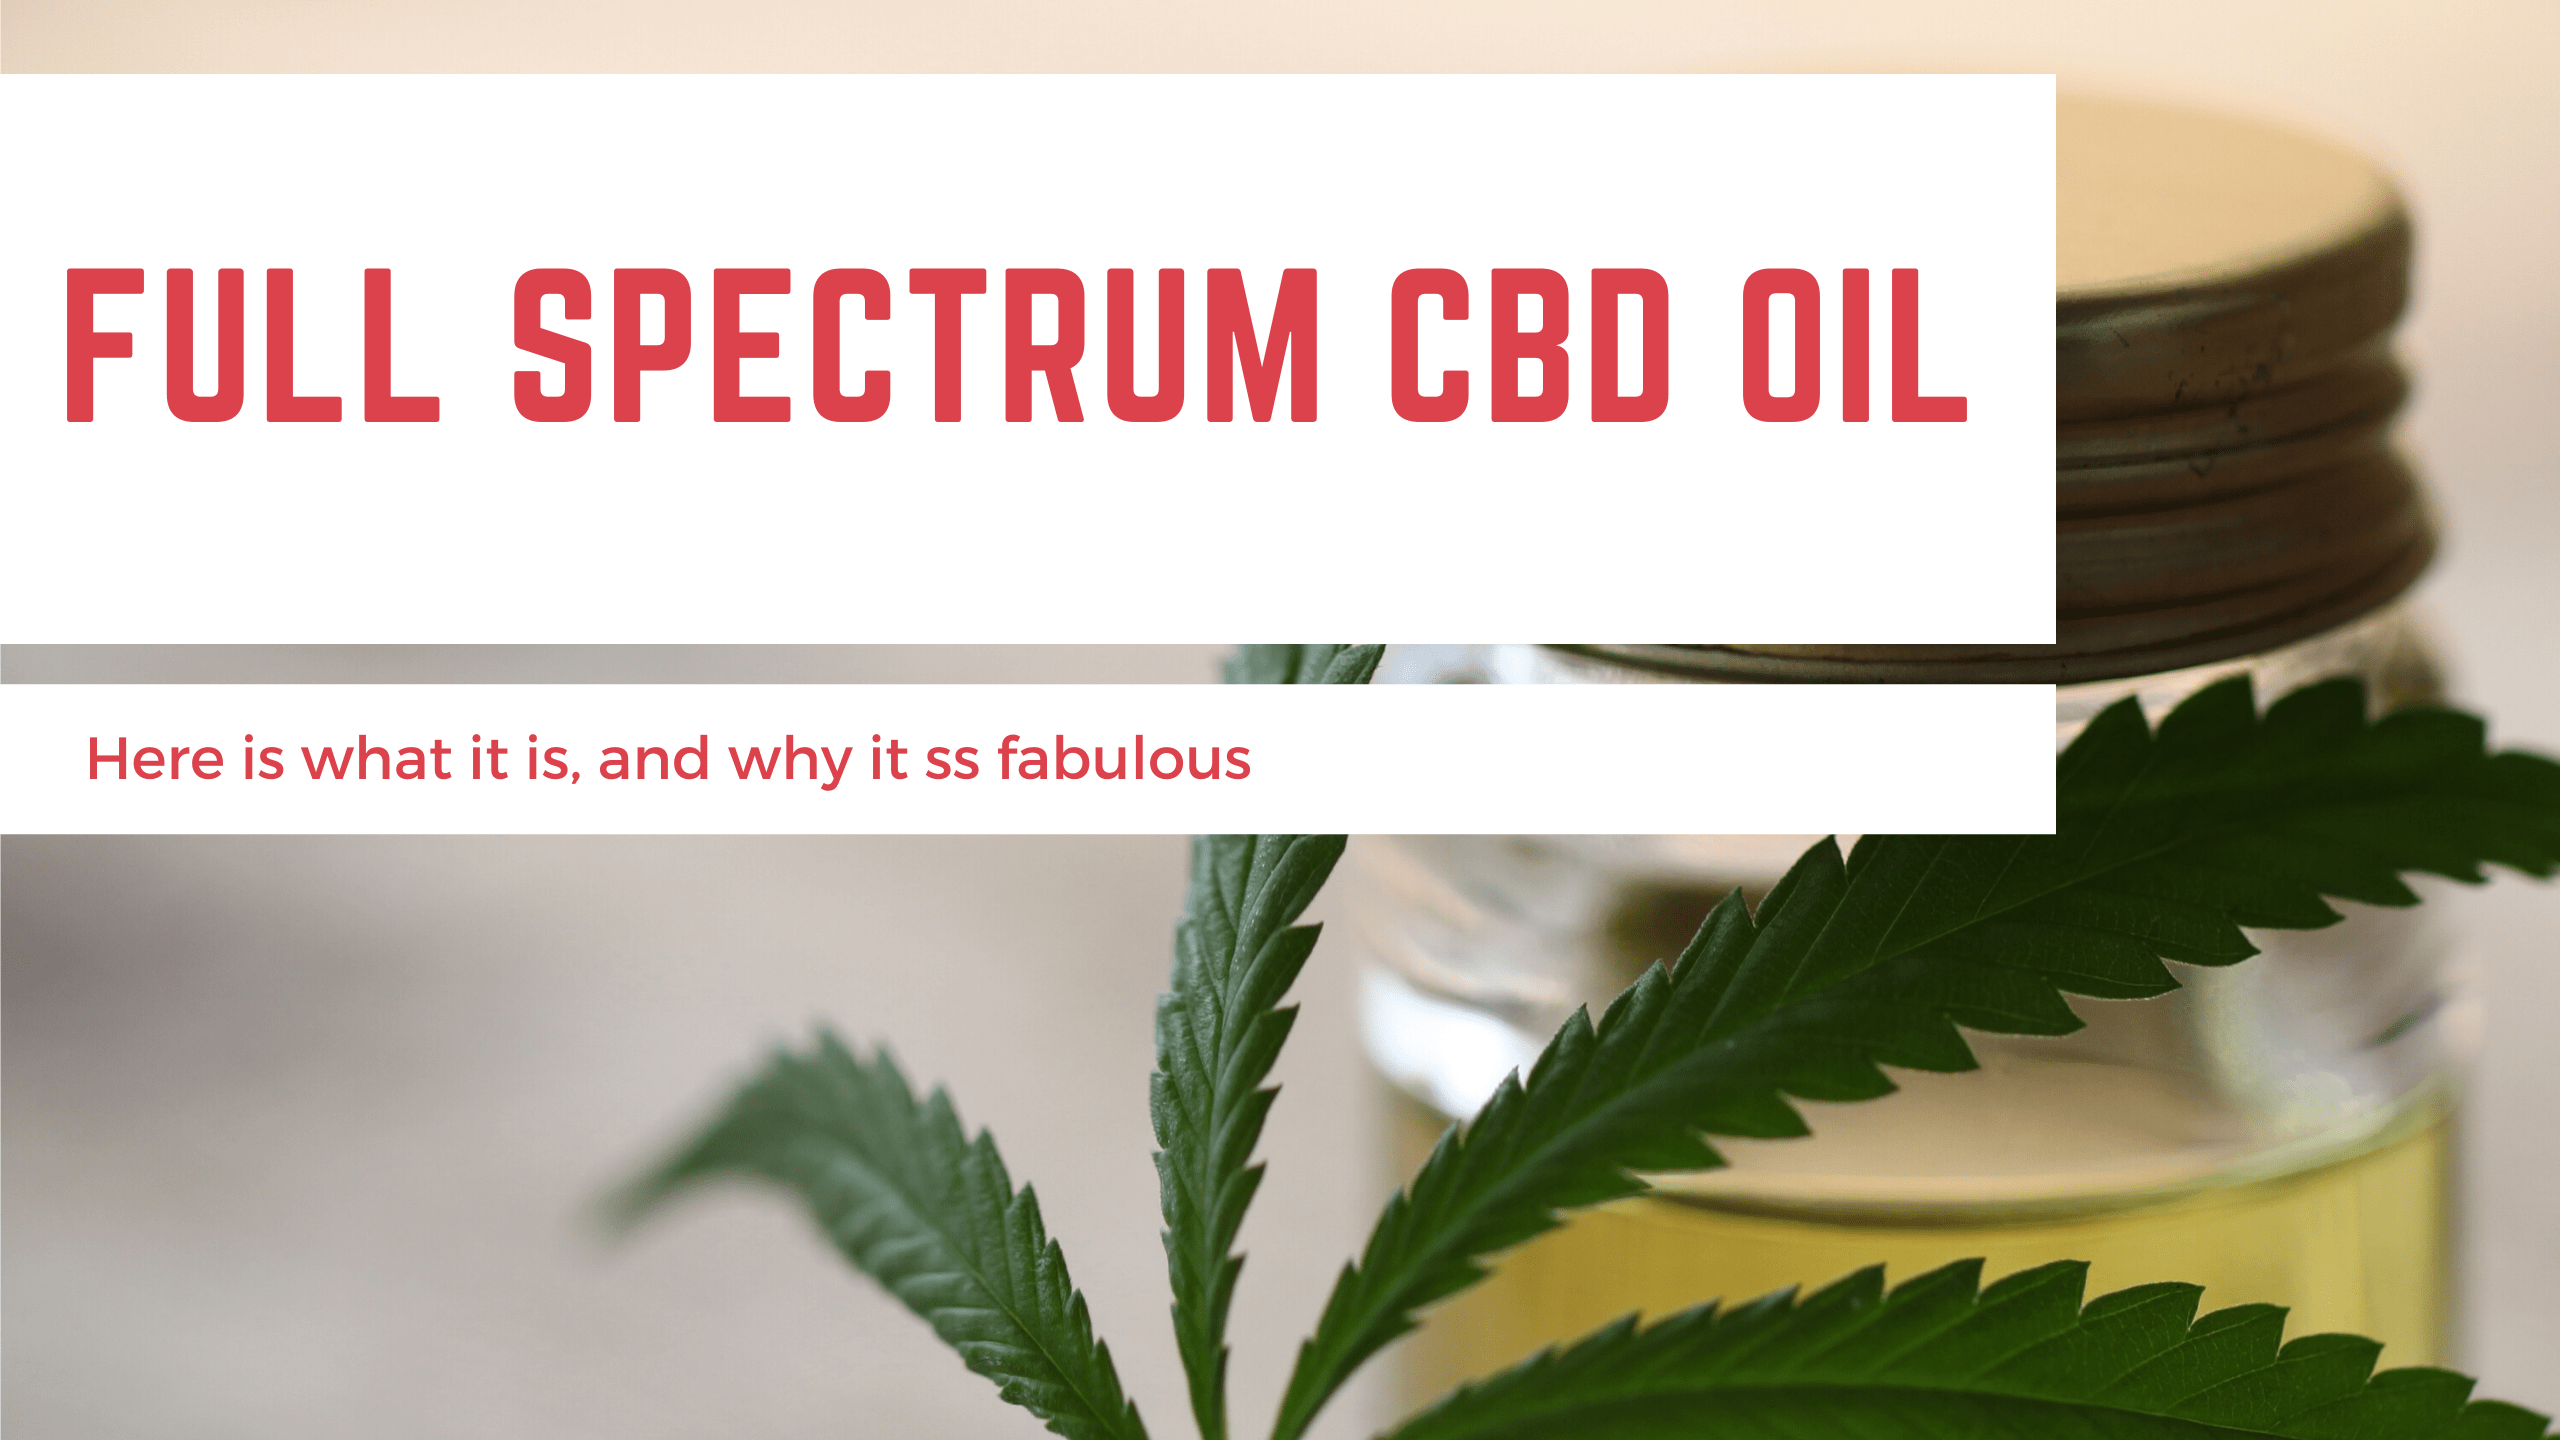 Full Spectrum CBD Oil, Here is What It Is, and Why It's fabulous.